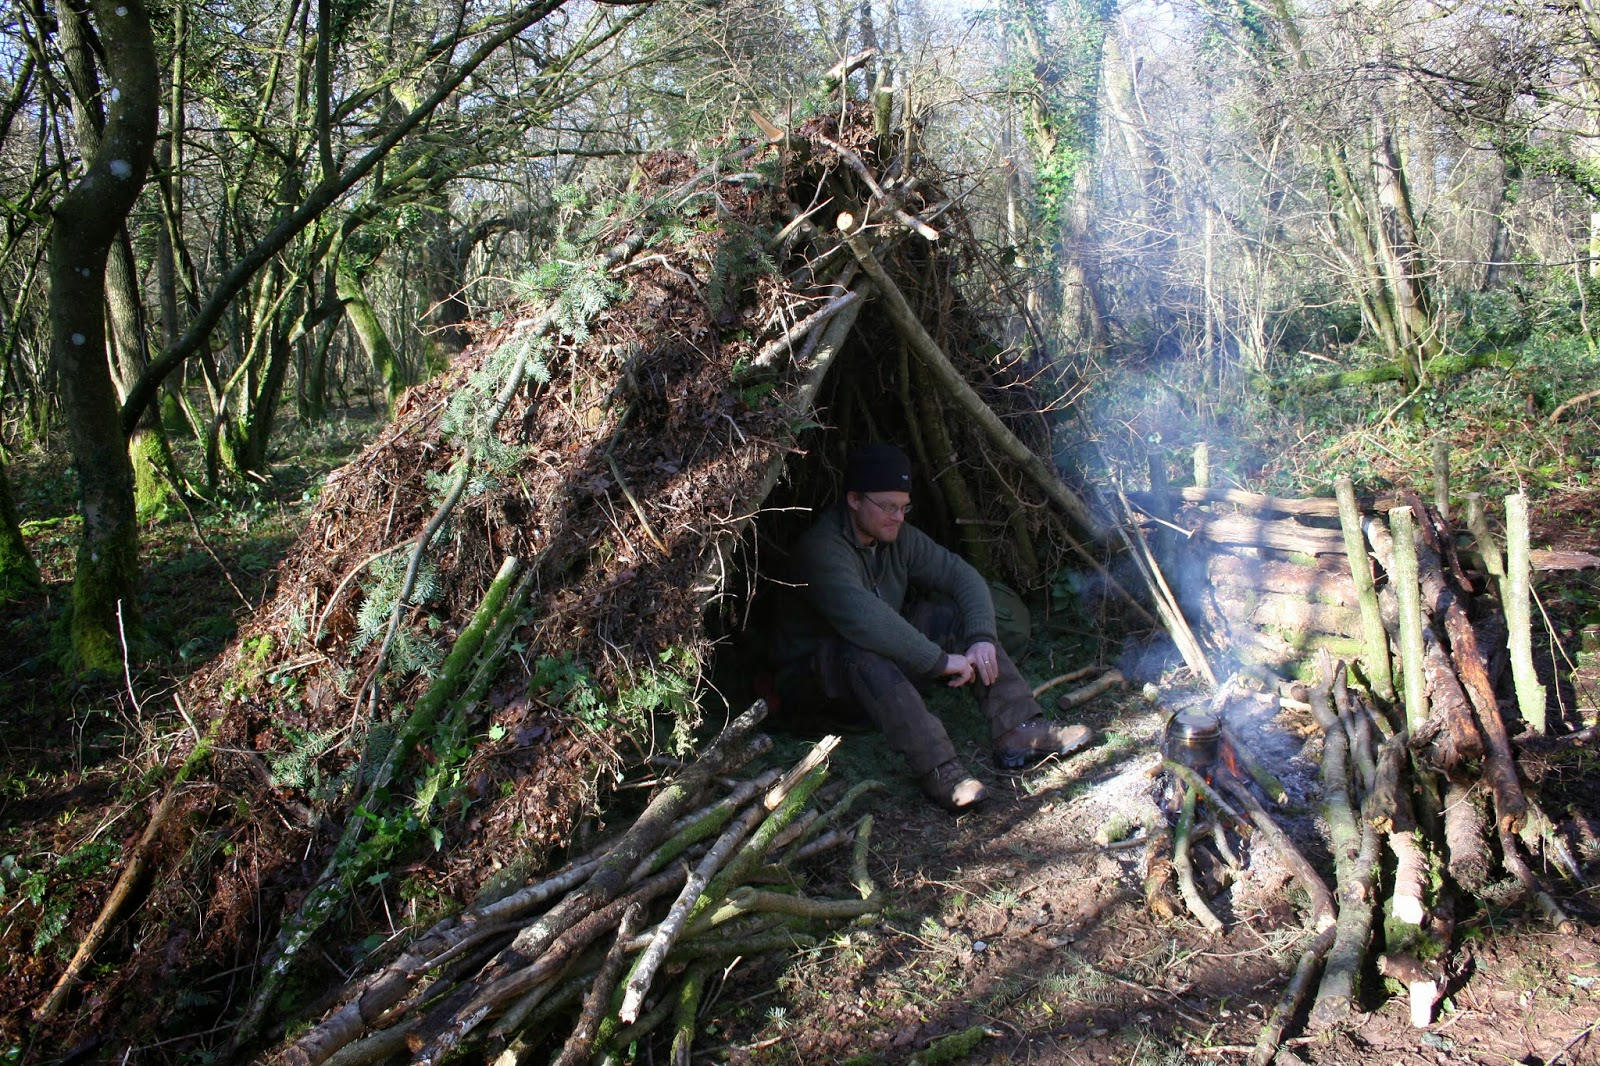 an analysis of the situation of wilderness survival Before building a shelter, you need to analyze you situation and put together a  survival strategy plan one of the reasons for this is so that you are not spending .